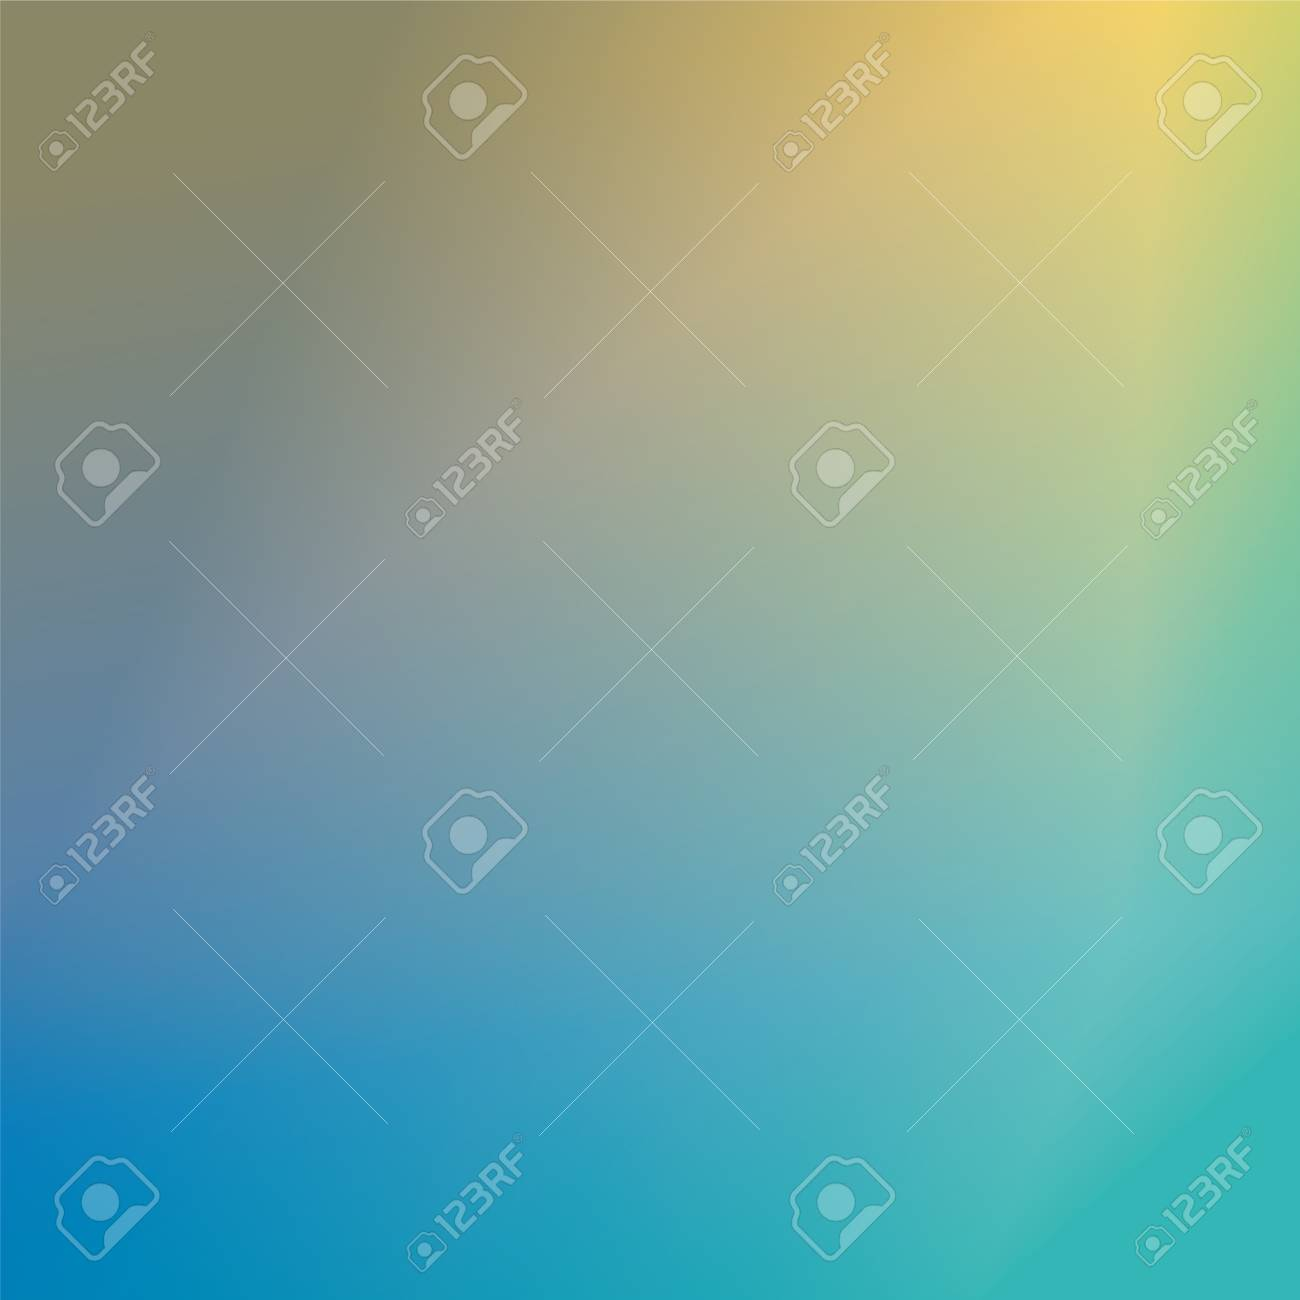 Vector illustration of soft colored abstract background Stock Vector - 24740277